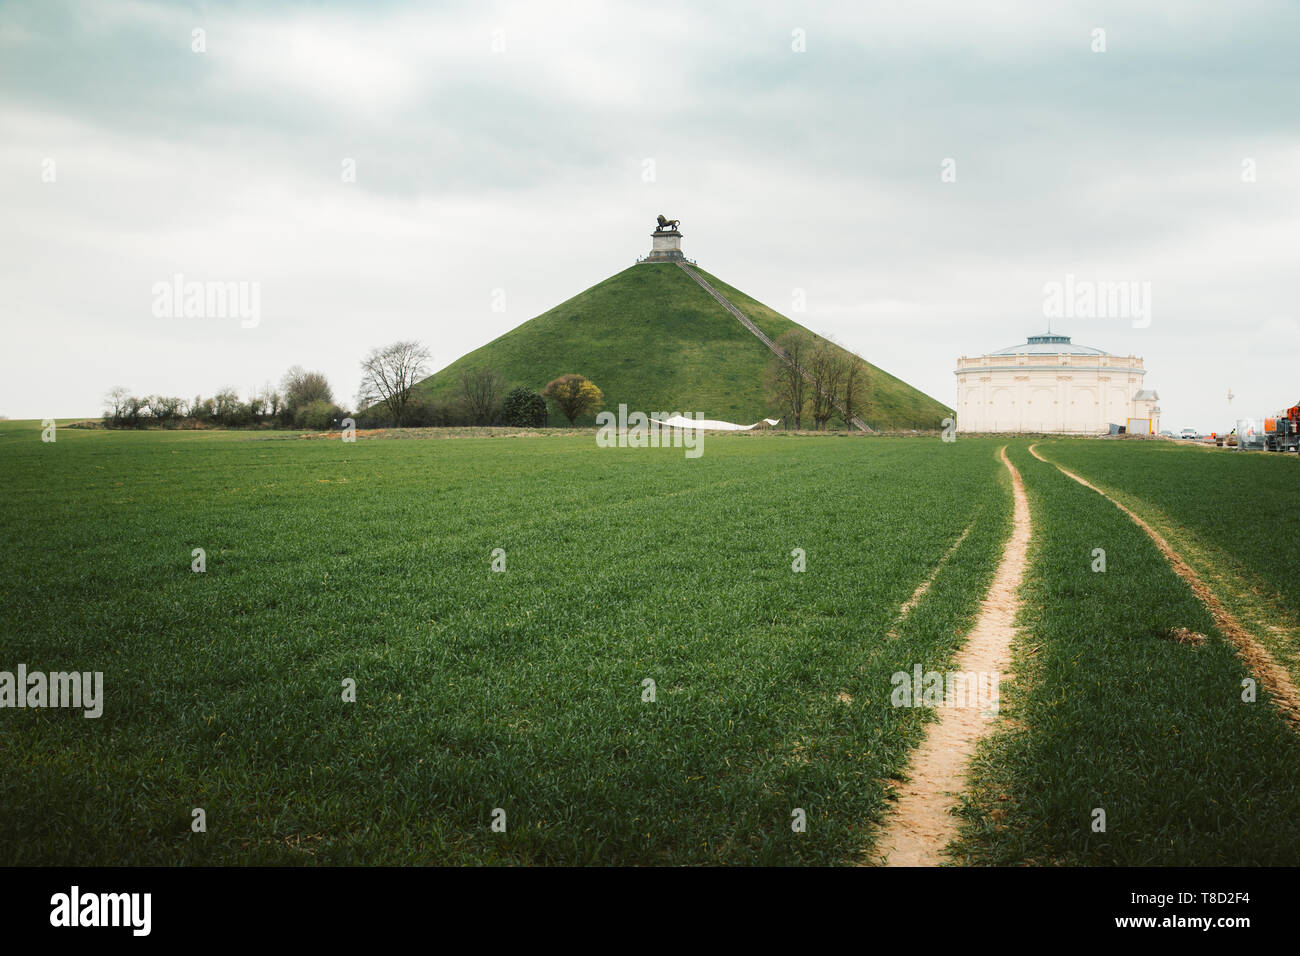 Panorama view of famous Lion's Mound (Butte du Lion) memorial site, a conical artificial hill, Wallonia, Belgium - Stock Image